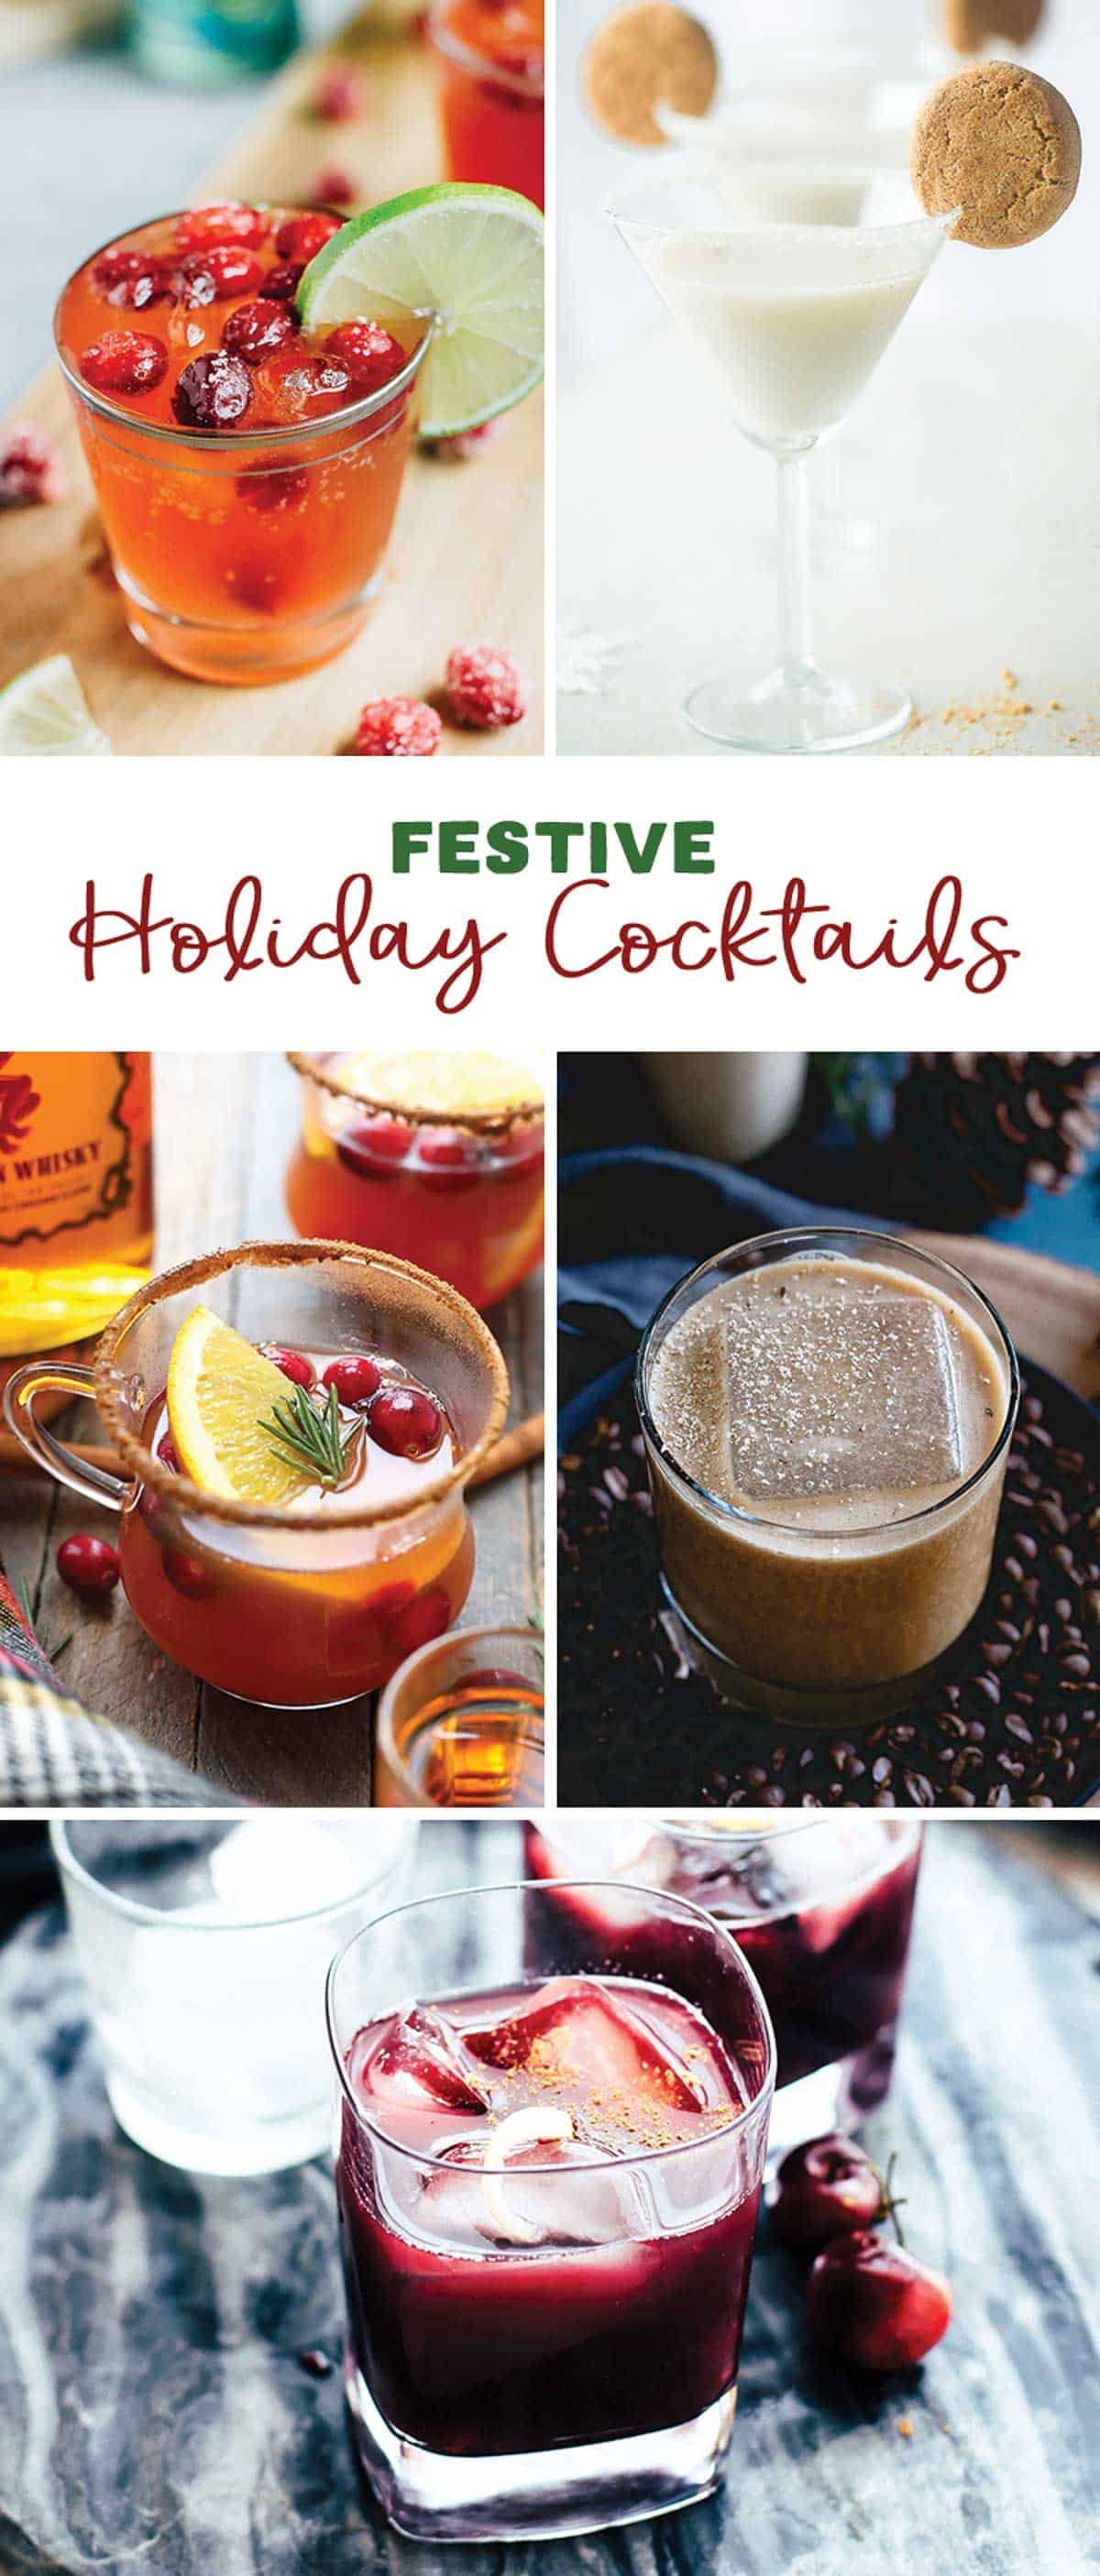 festive-holiday-cocktails